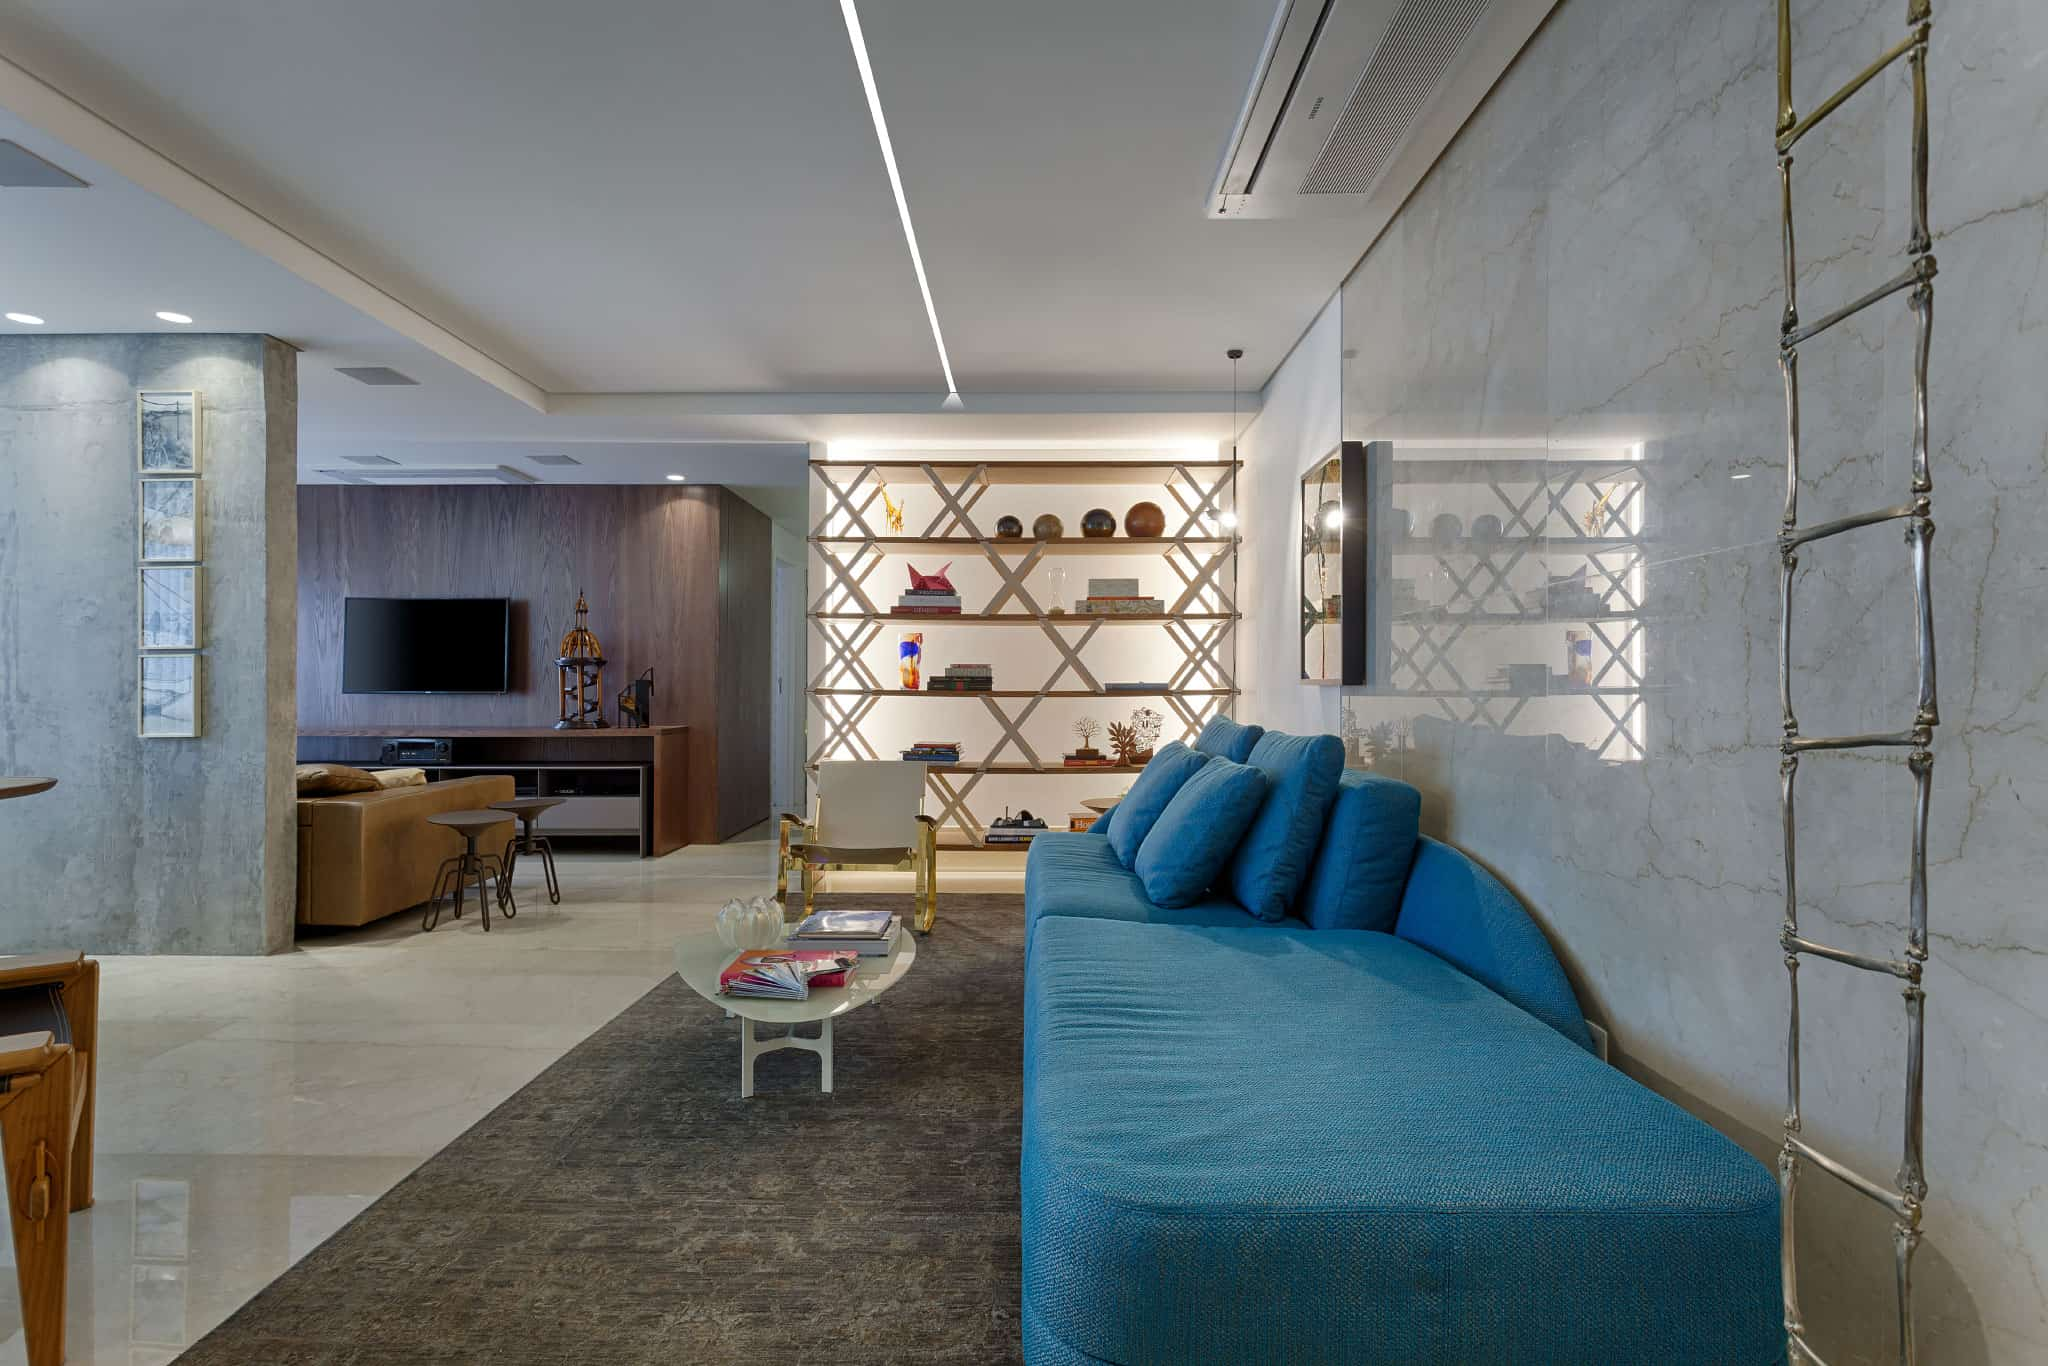 An Apartment With a Cool Design Created by 2Arquitetos